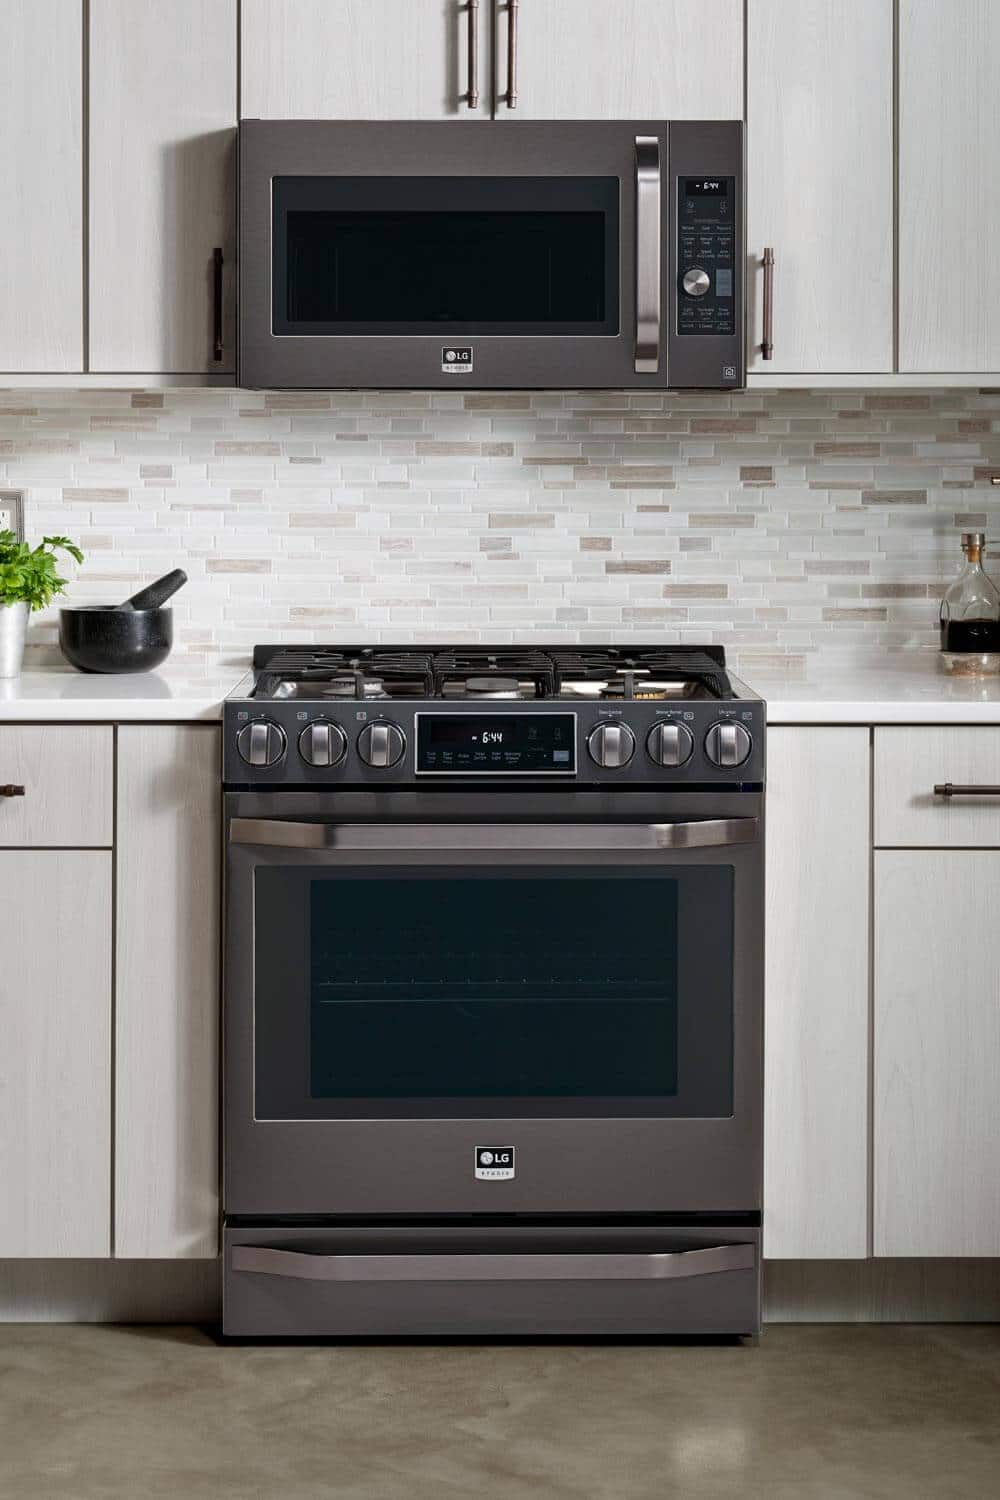 picture of a stove